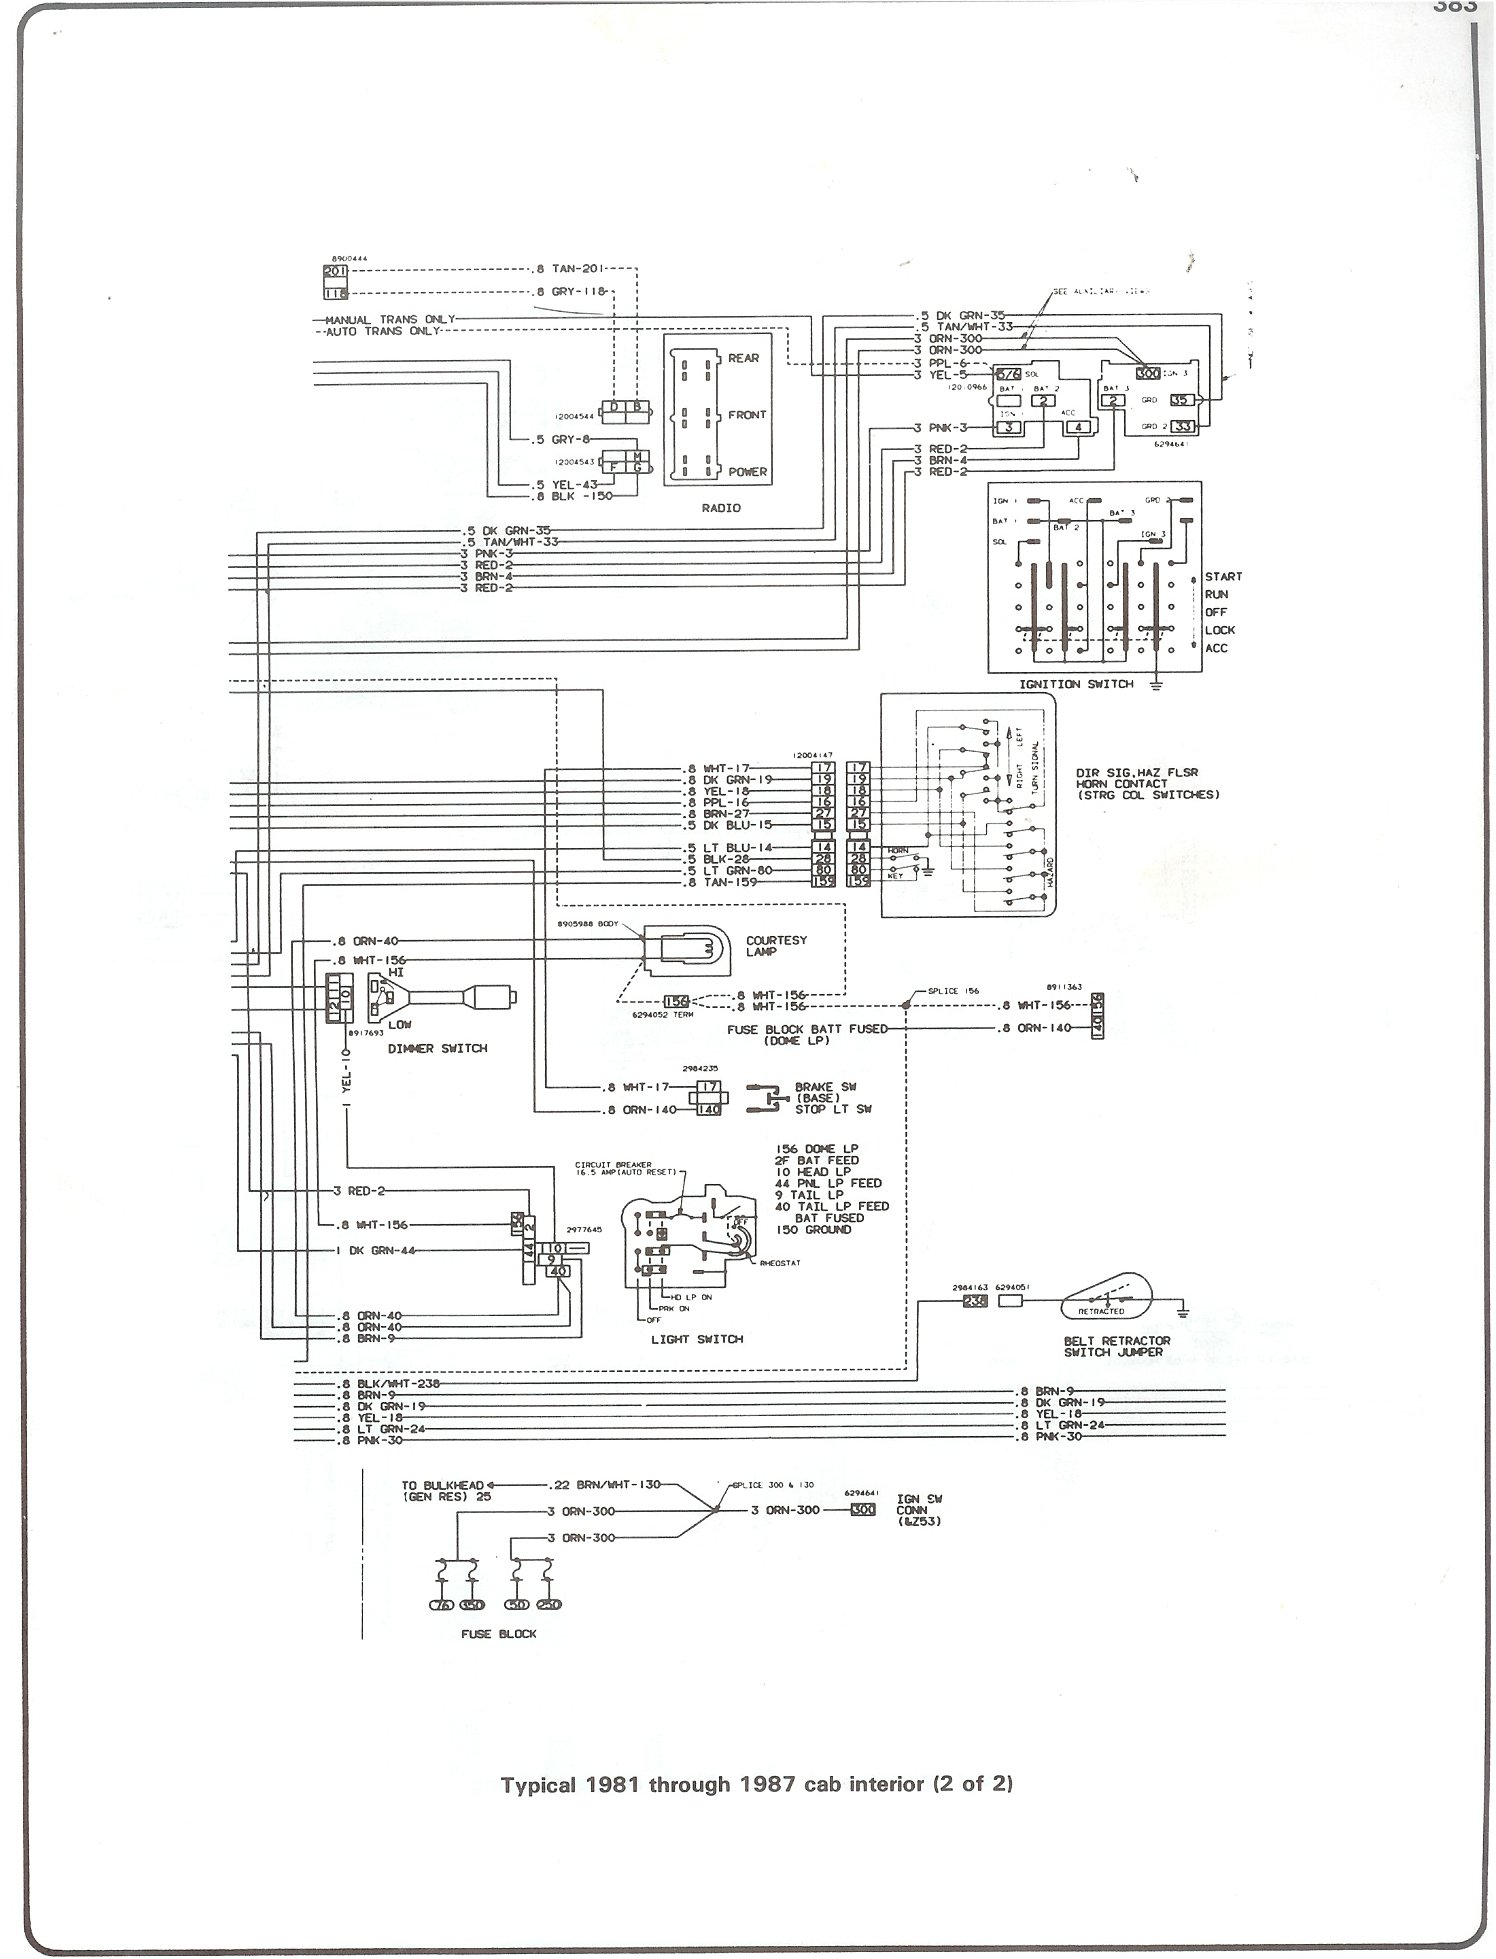 Complete 73 87 Wiring Diagrams Ignition Diagram 86 Chevy 305 81 Cab Interior Page 2